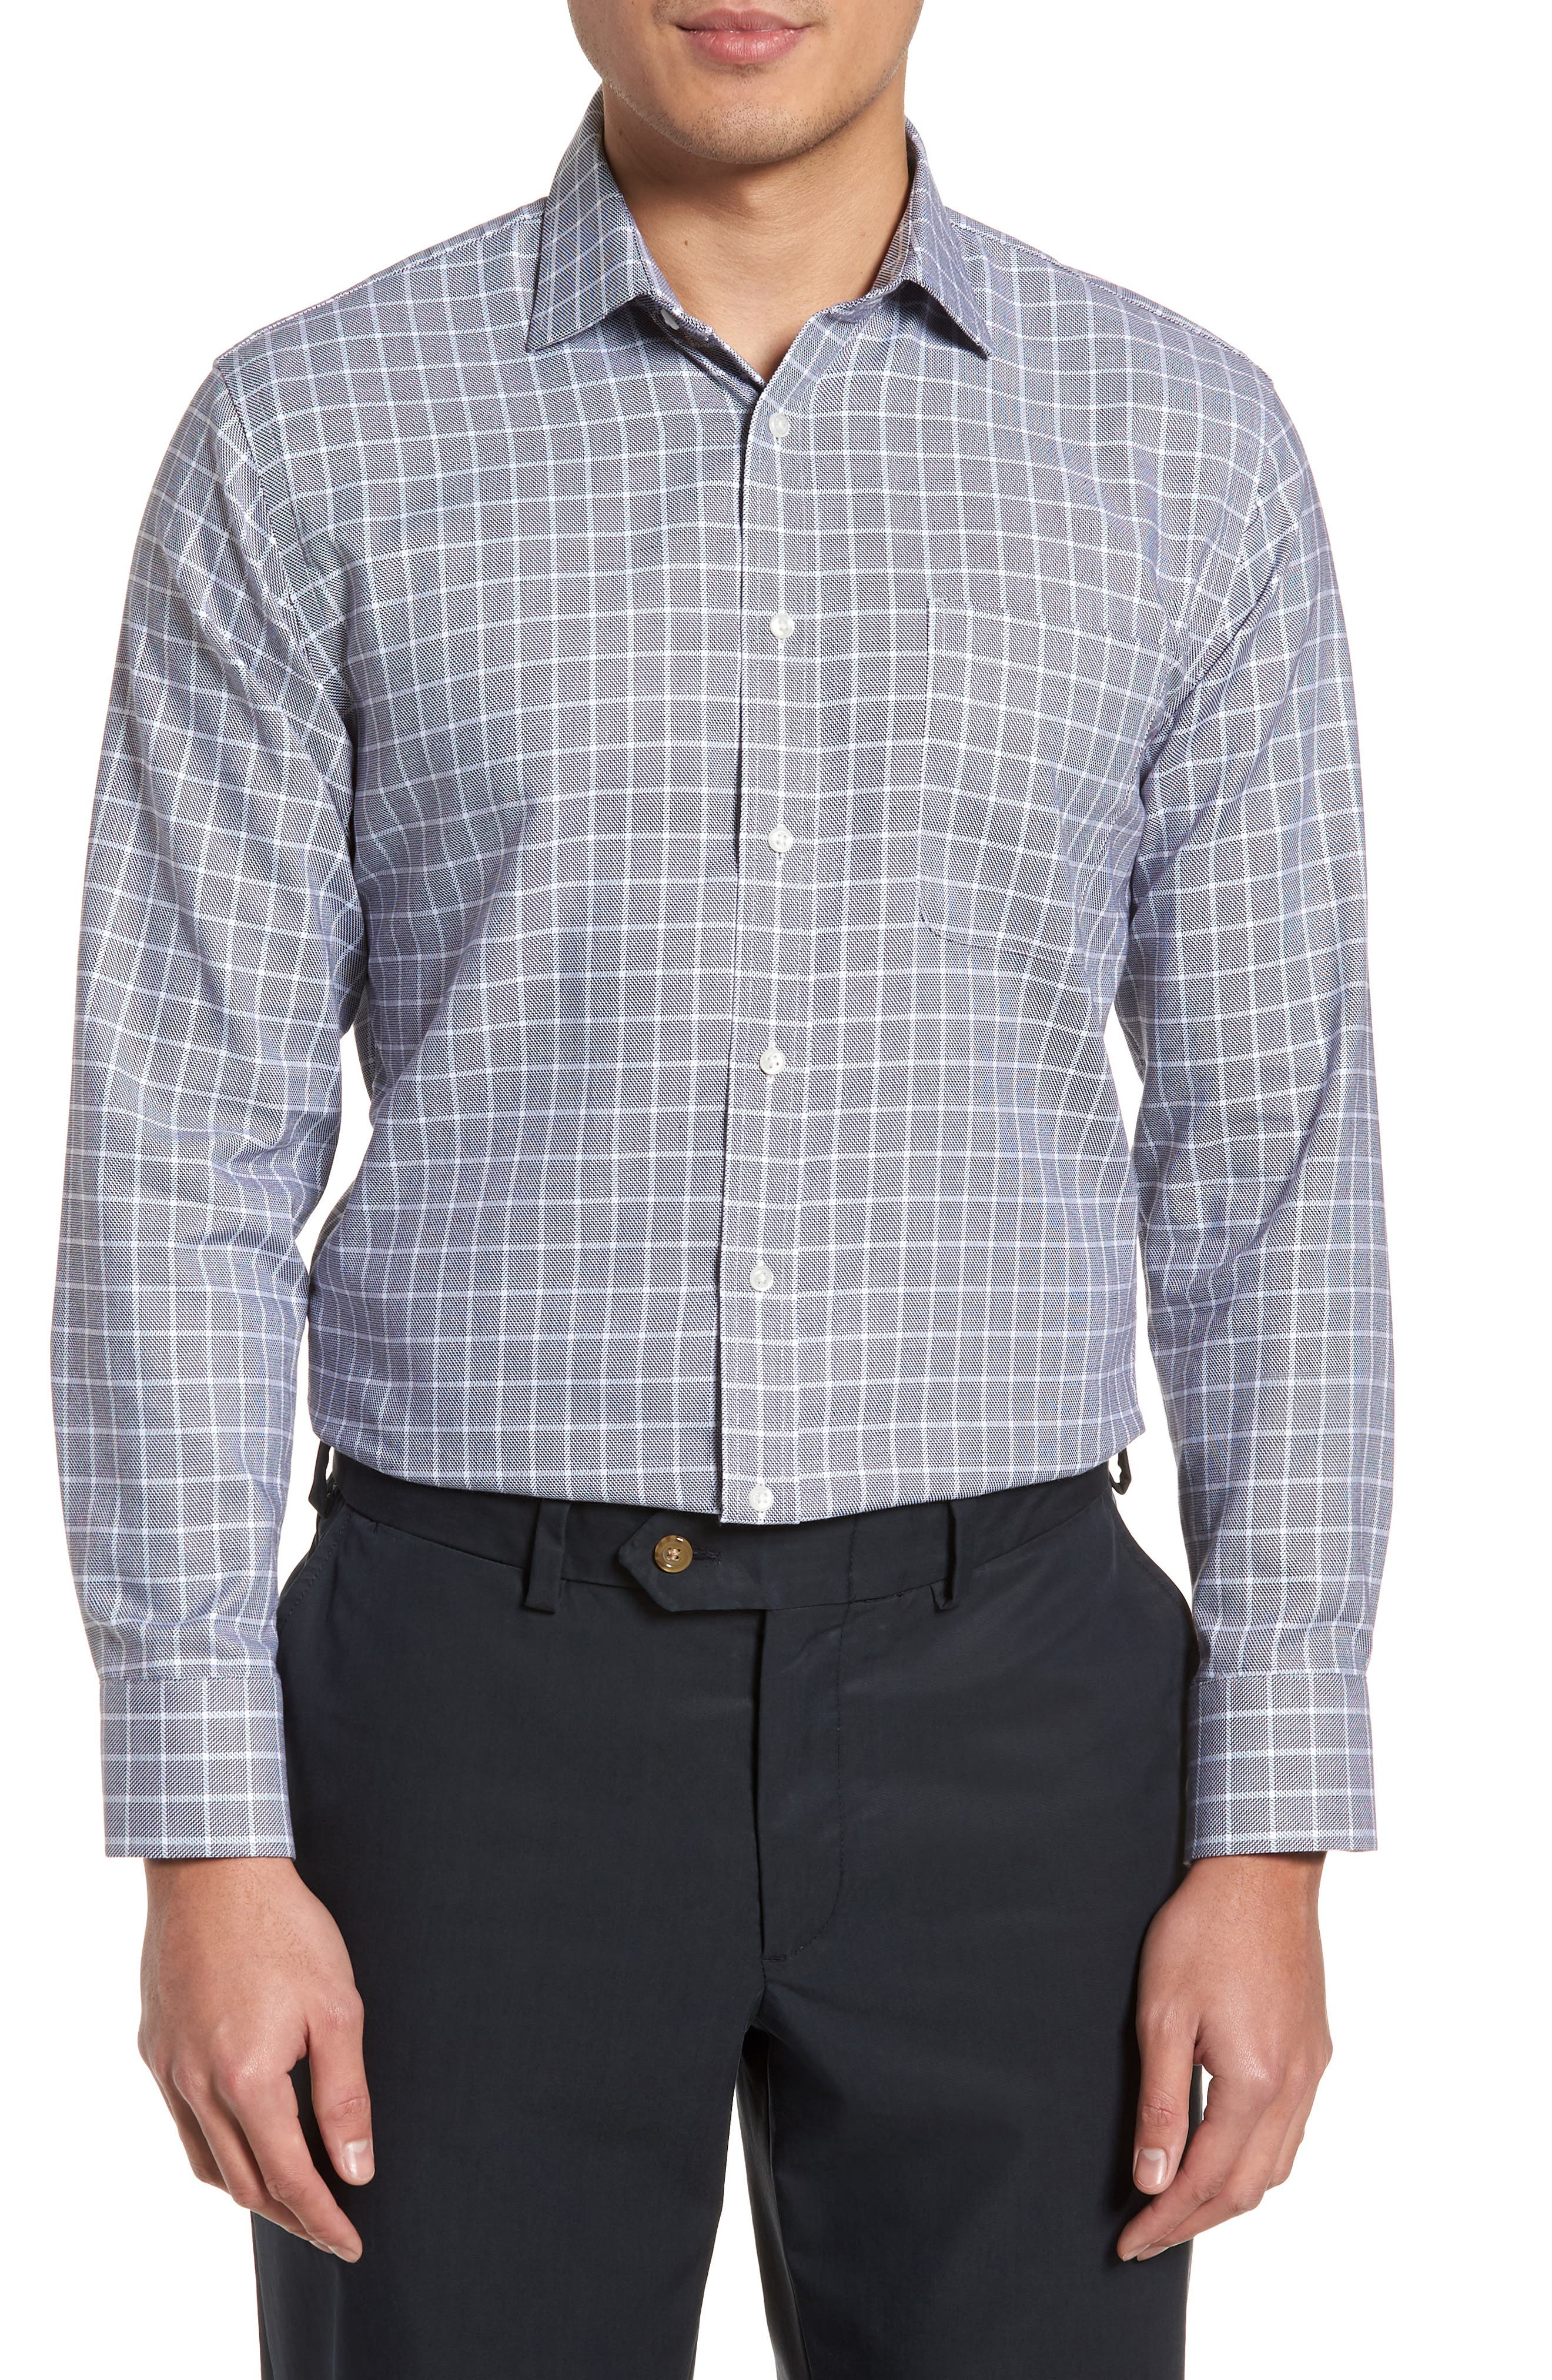 NORDSTROM MEN'S SHOP,                             Trim Fit Non-Iron Check Dress Shirt,                             Main thumbnail 1, color,                             001